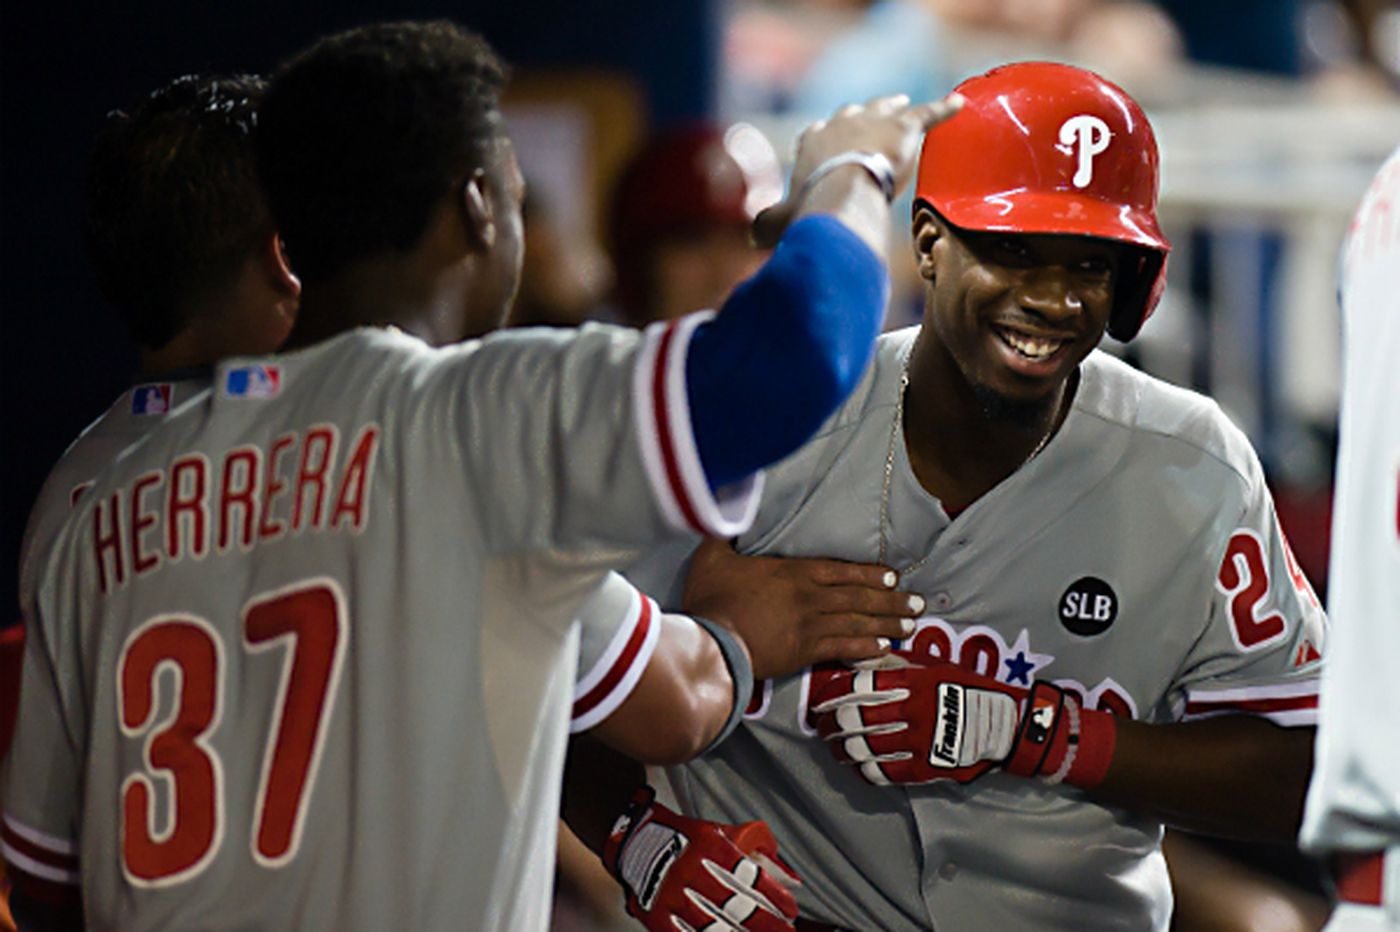 Sweeney's first homer helps Phillies beat Marlins